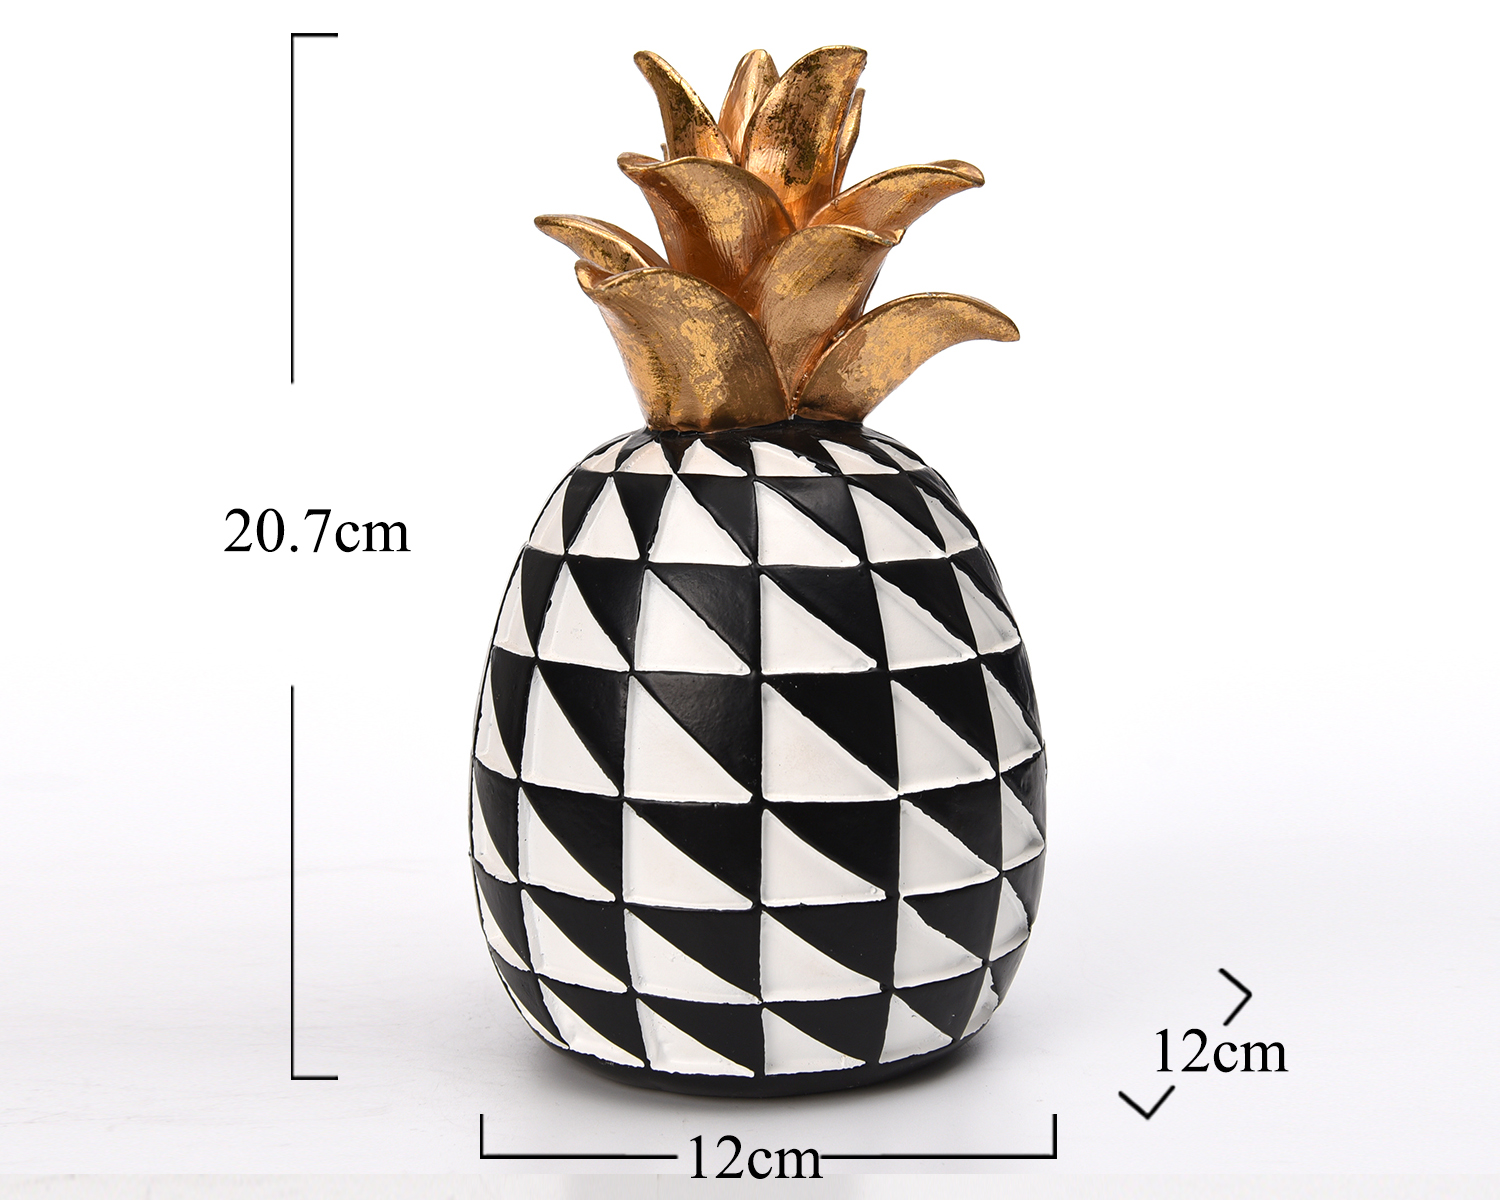 Europe Morden Art Polyresin Resin Geometric Fruit Small Figurine Statue  Gift Craft Pineapple Wholesale Home Decoration   Buy Diy Home Pig ...